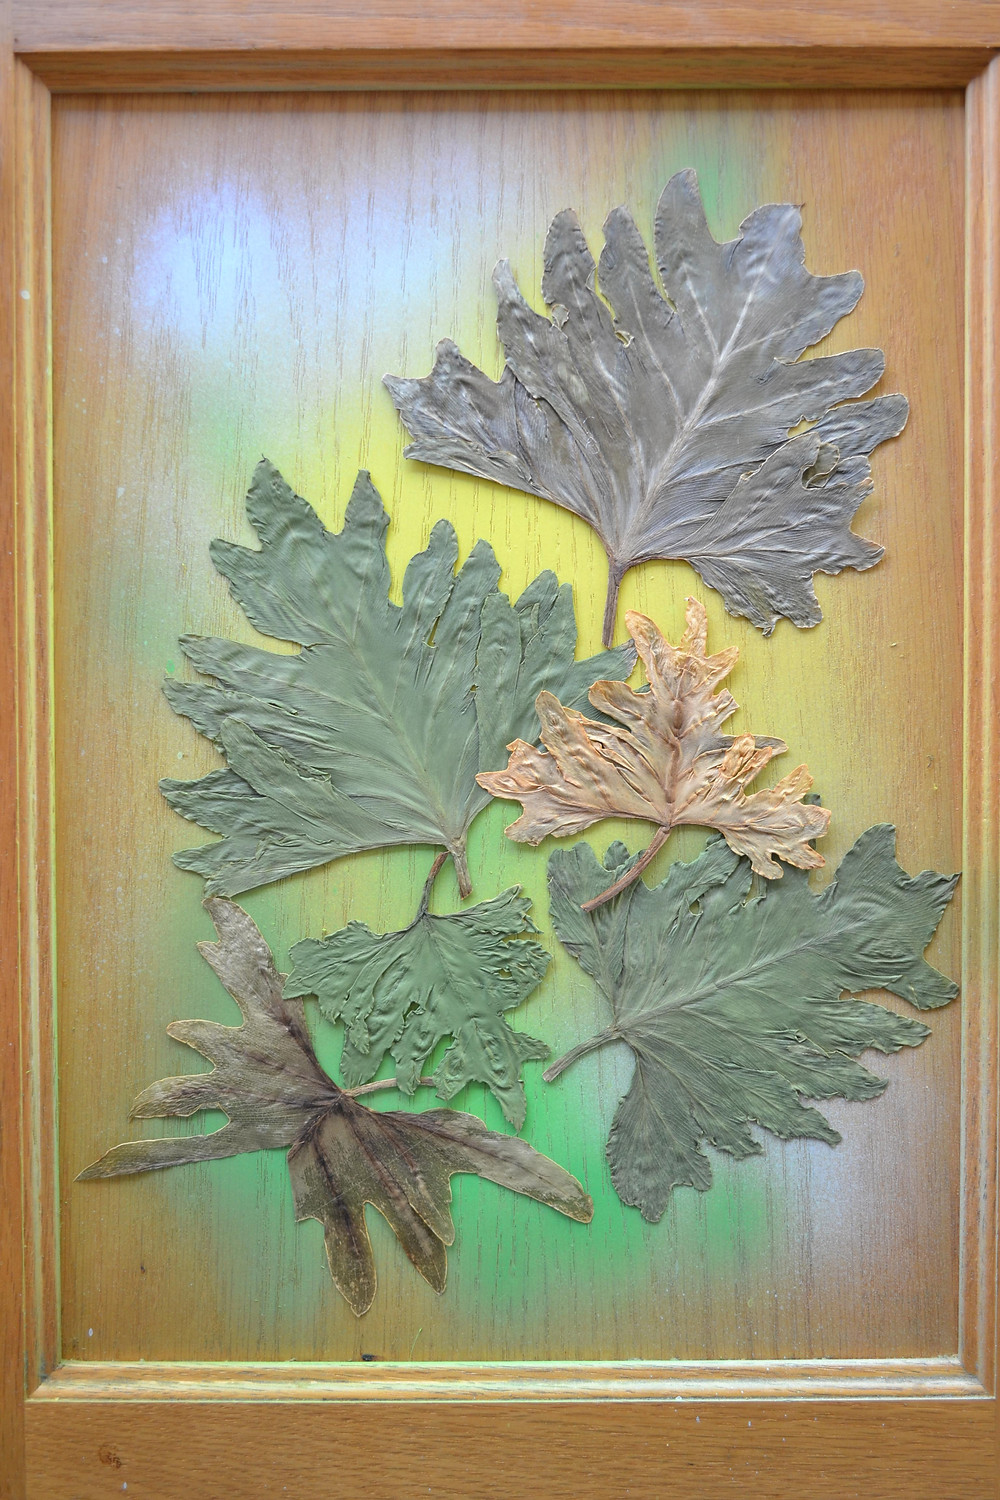 A door of a wooden cabinet with dried pressed leaves of Philodendron different colors. Pressed Flower Craft.